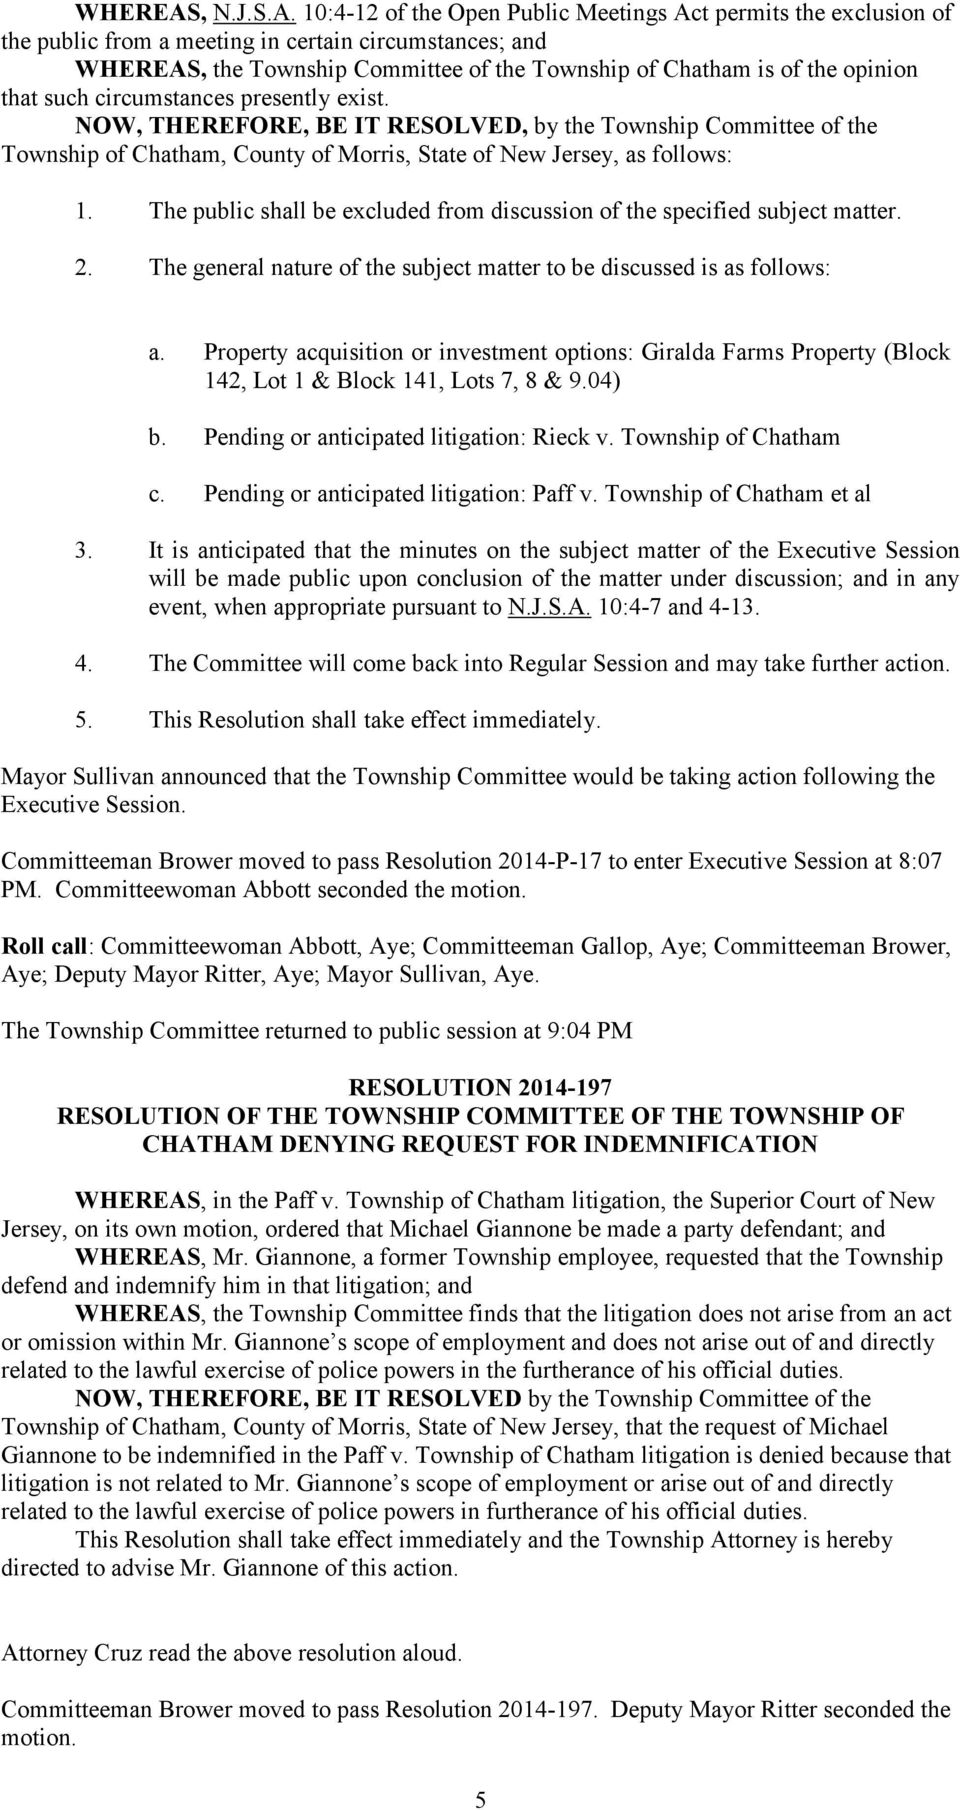 10:4-12 of the Open Public Meetings Act permits the exclusion of the public from a meeting in certain circumstances; and , the Township Committee of the Township of Chatham is of the opinion that